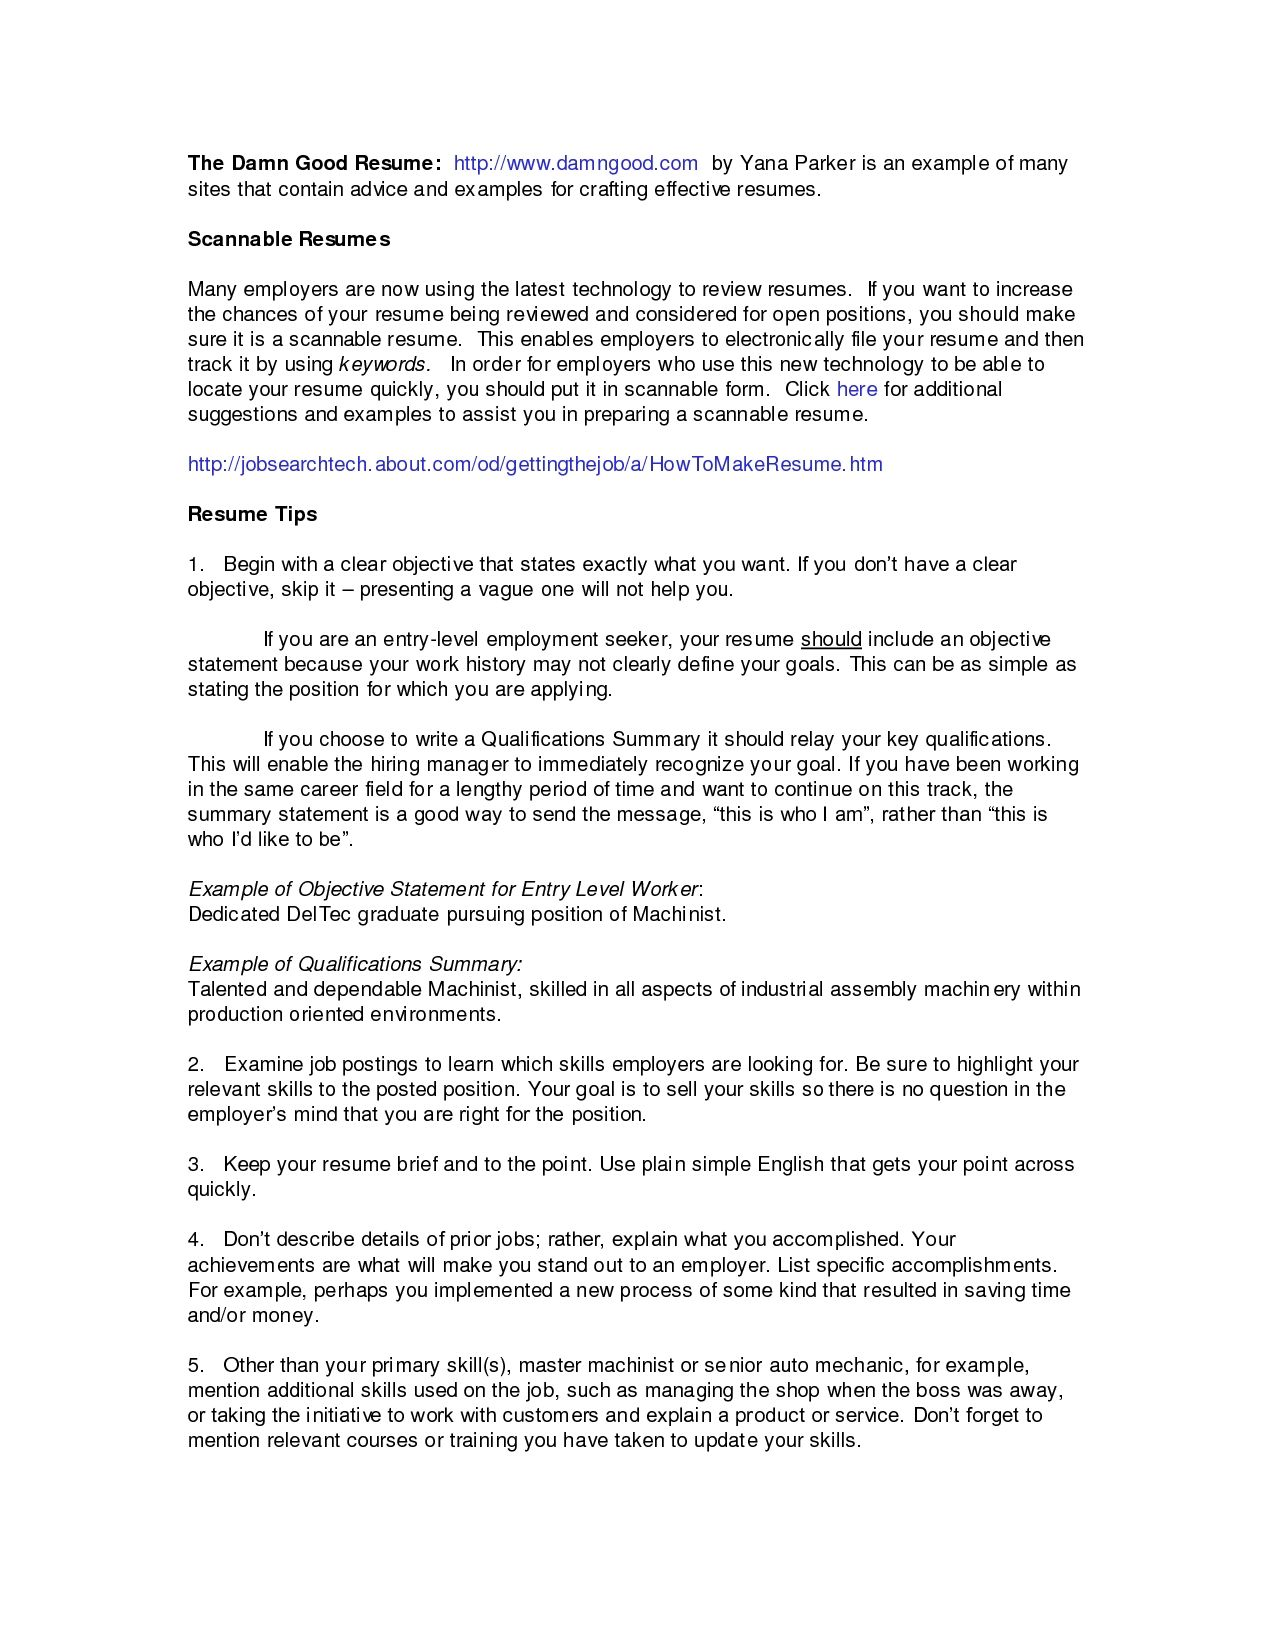 Resume Qualification Summary Resume Skills Summary Examples Skills Summary Resume Example .